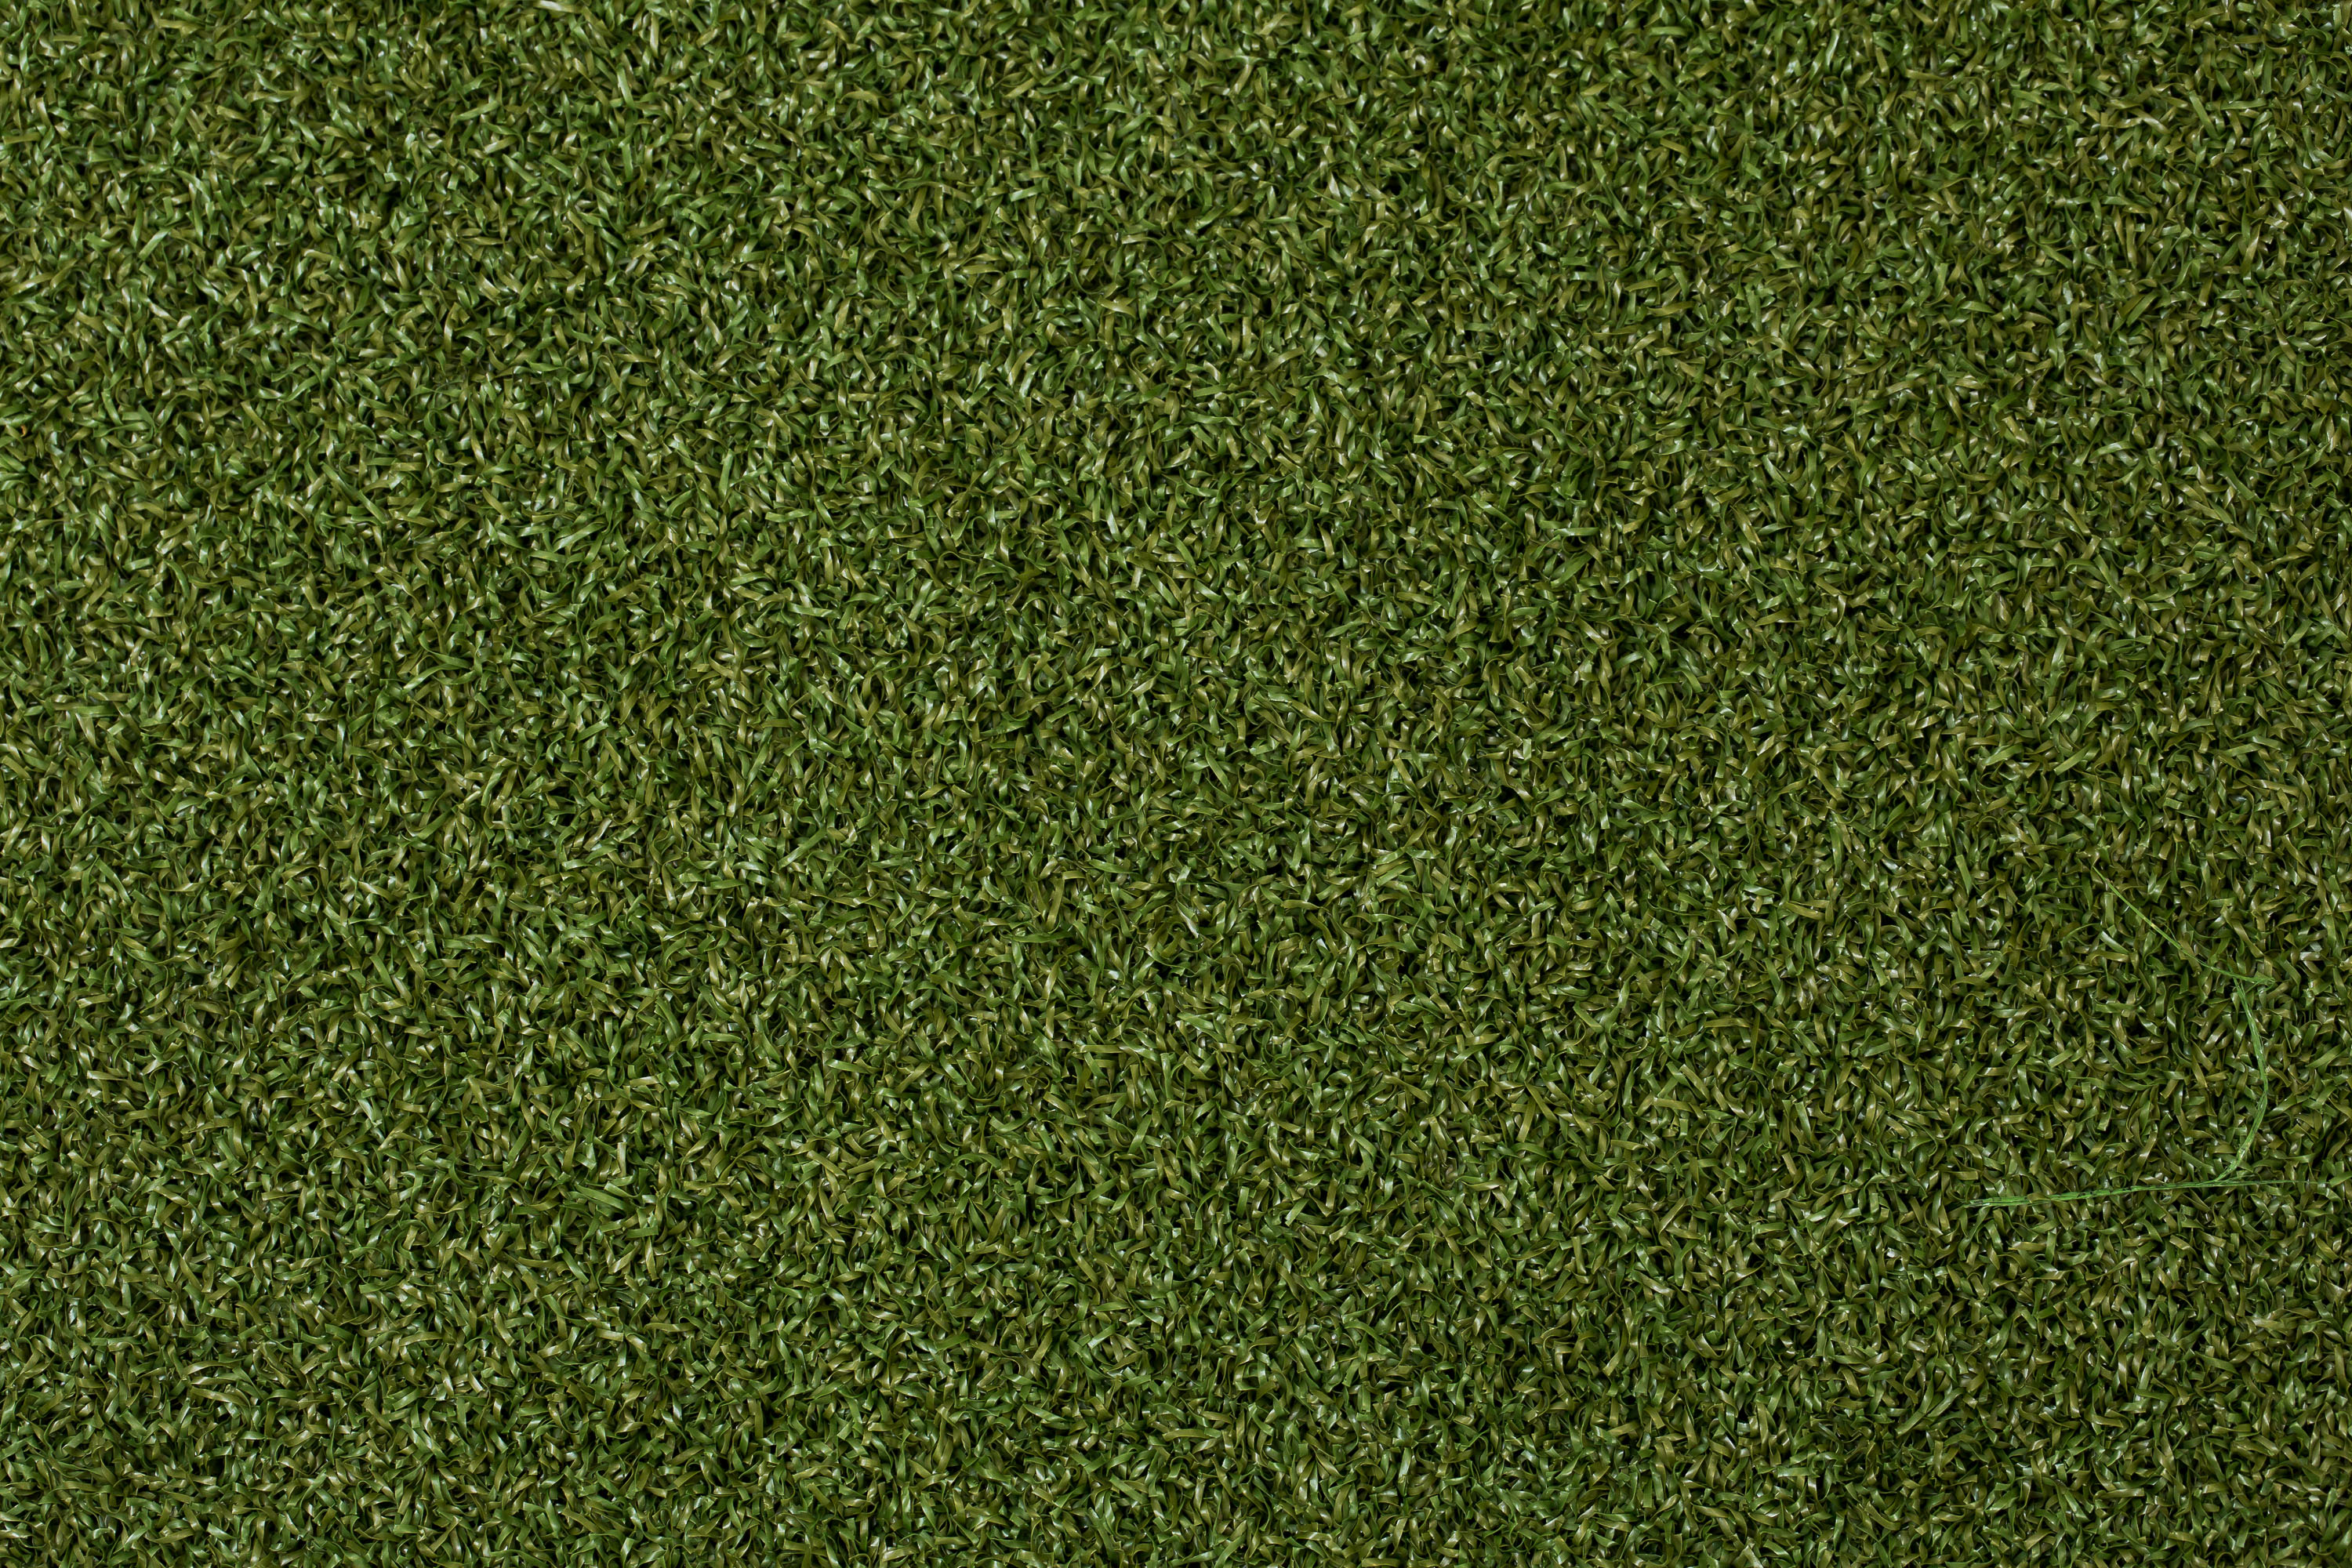 Newest Artificial Grass Putting Green at Houghton-le-Spring! |Putting Green Grass